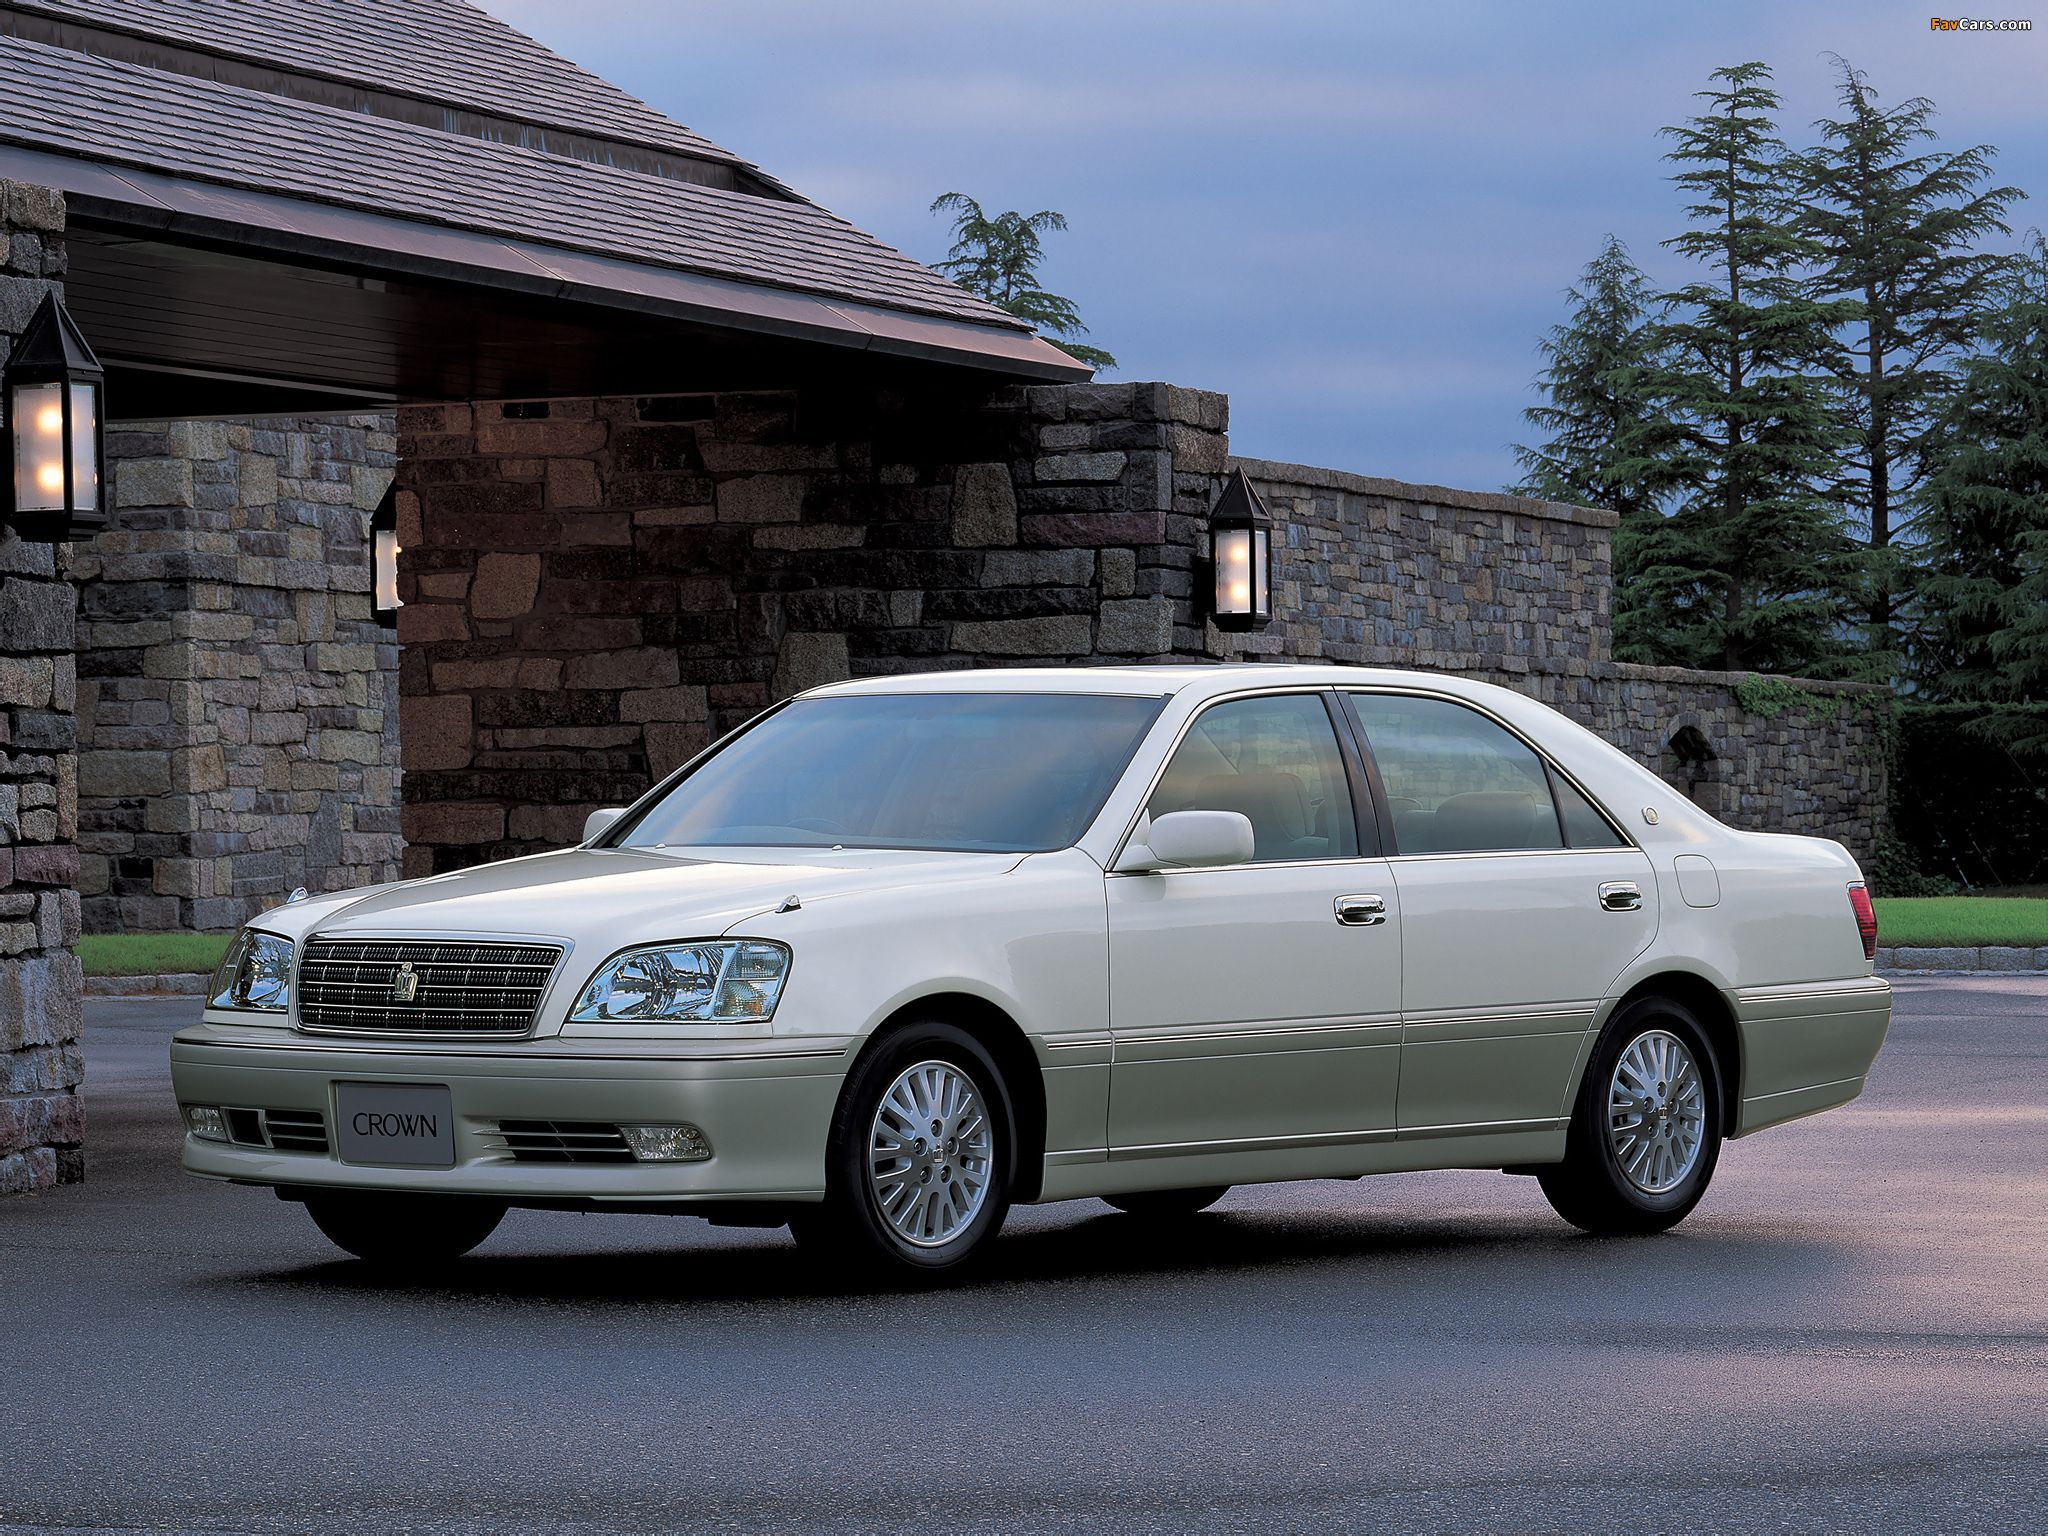 55 best toyota crown images on Pinterest